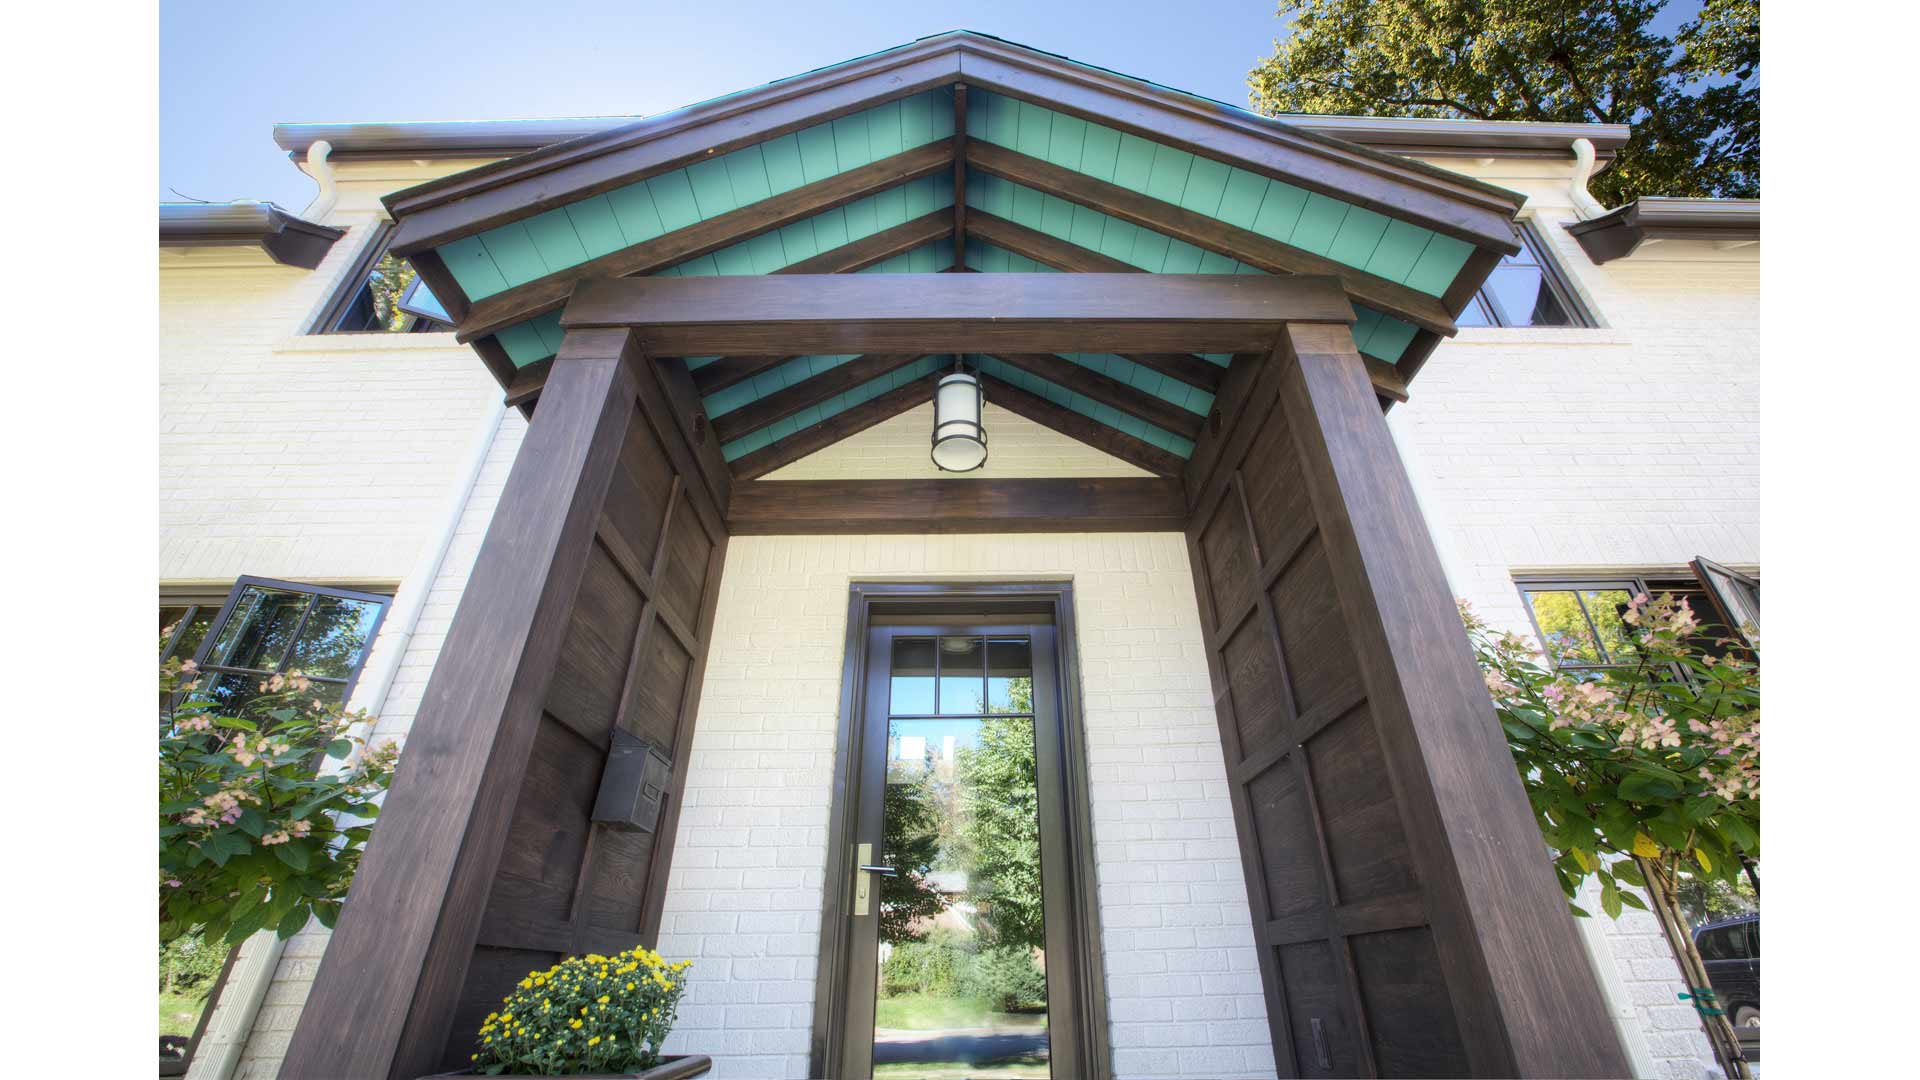 Front Exterior Elevation features new gable entry porch with Tudor/Craftsman details including exposed rafters and Robin's egg blue soffit color - Butler Tarkington Modern Tudor - Indianapolis, IN